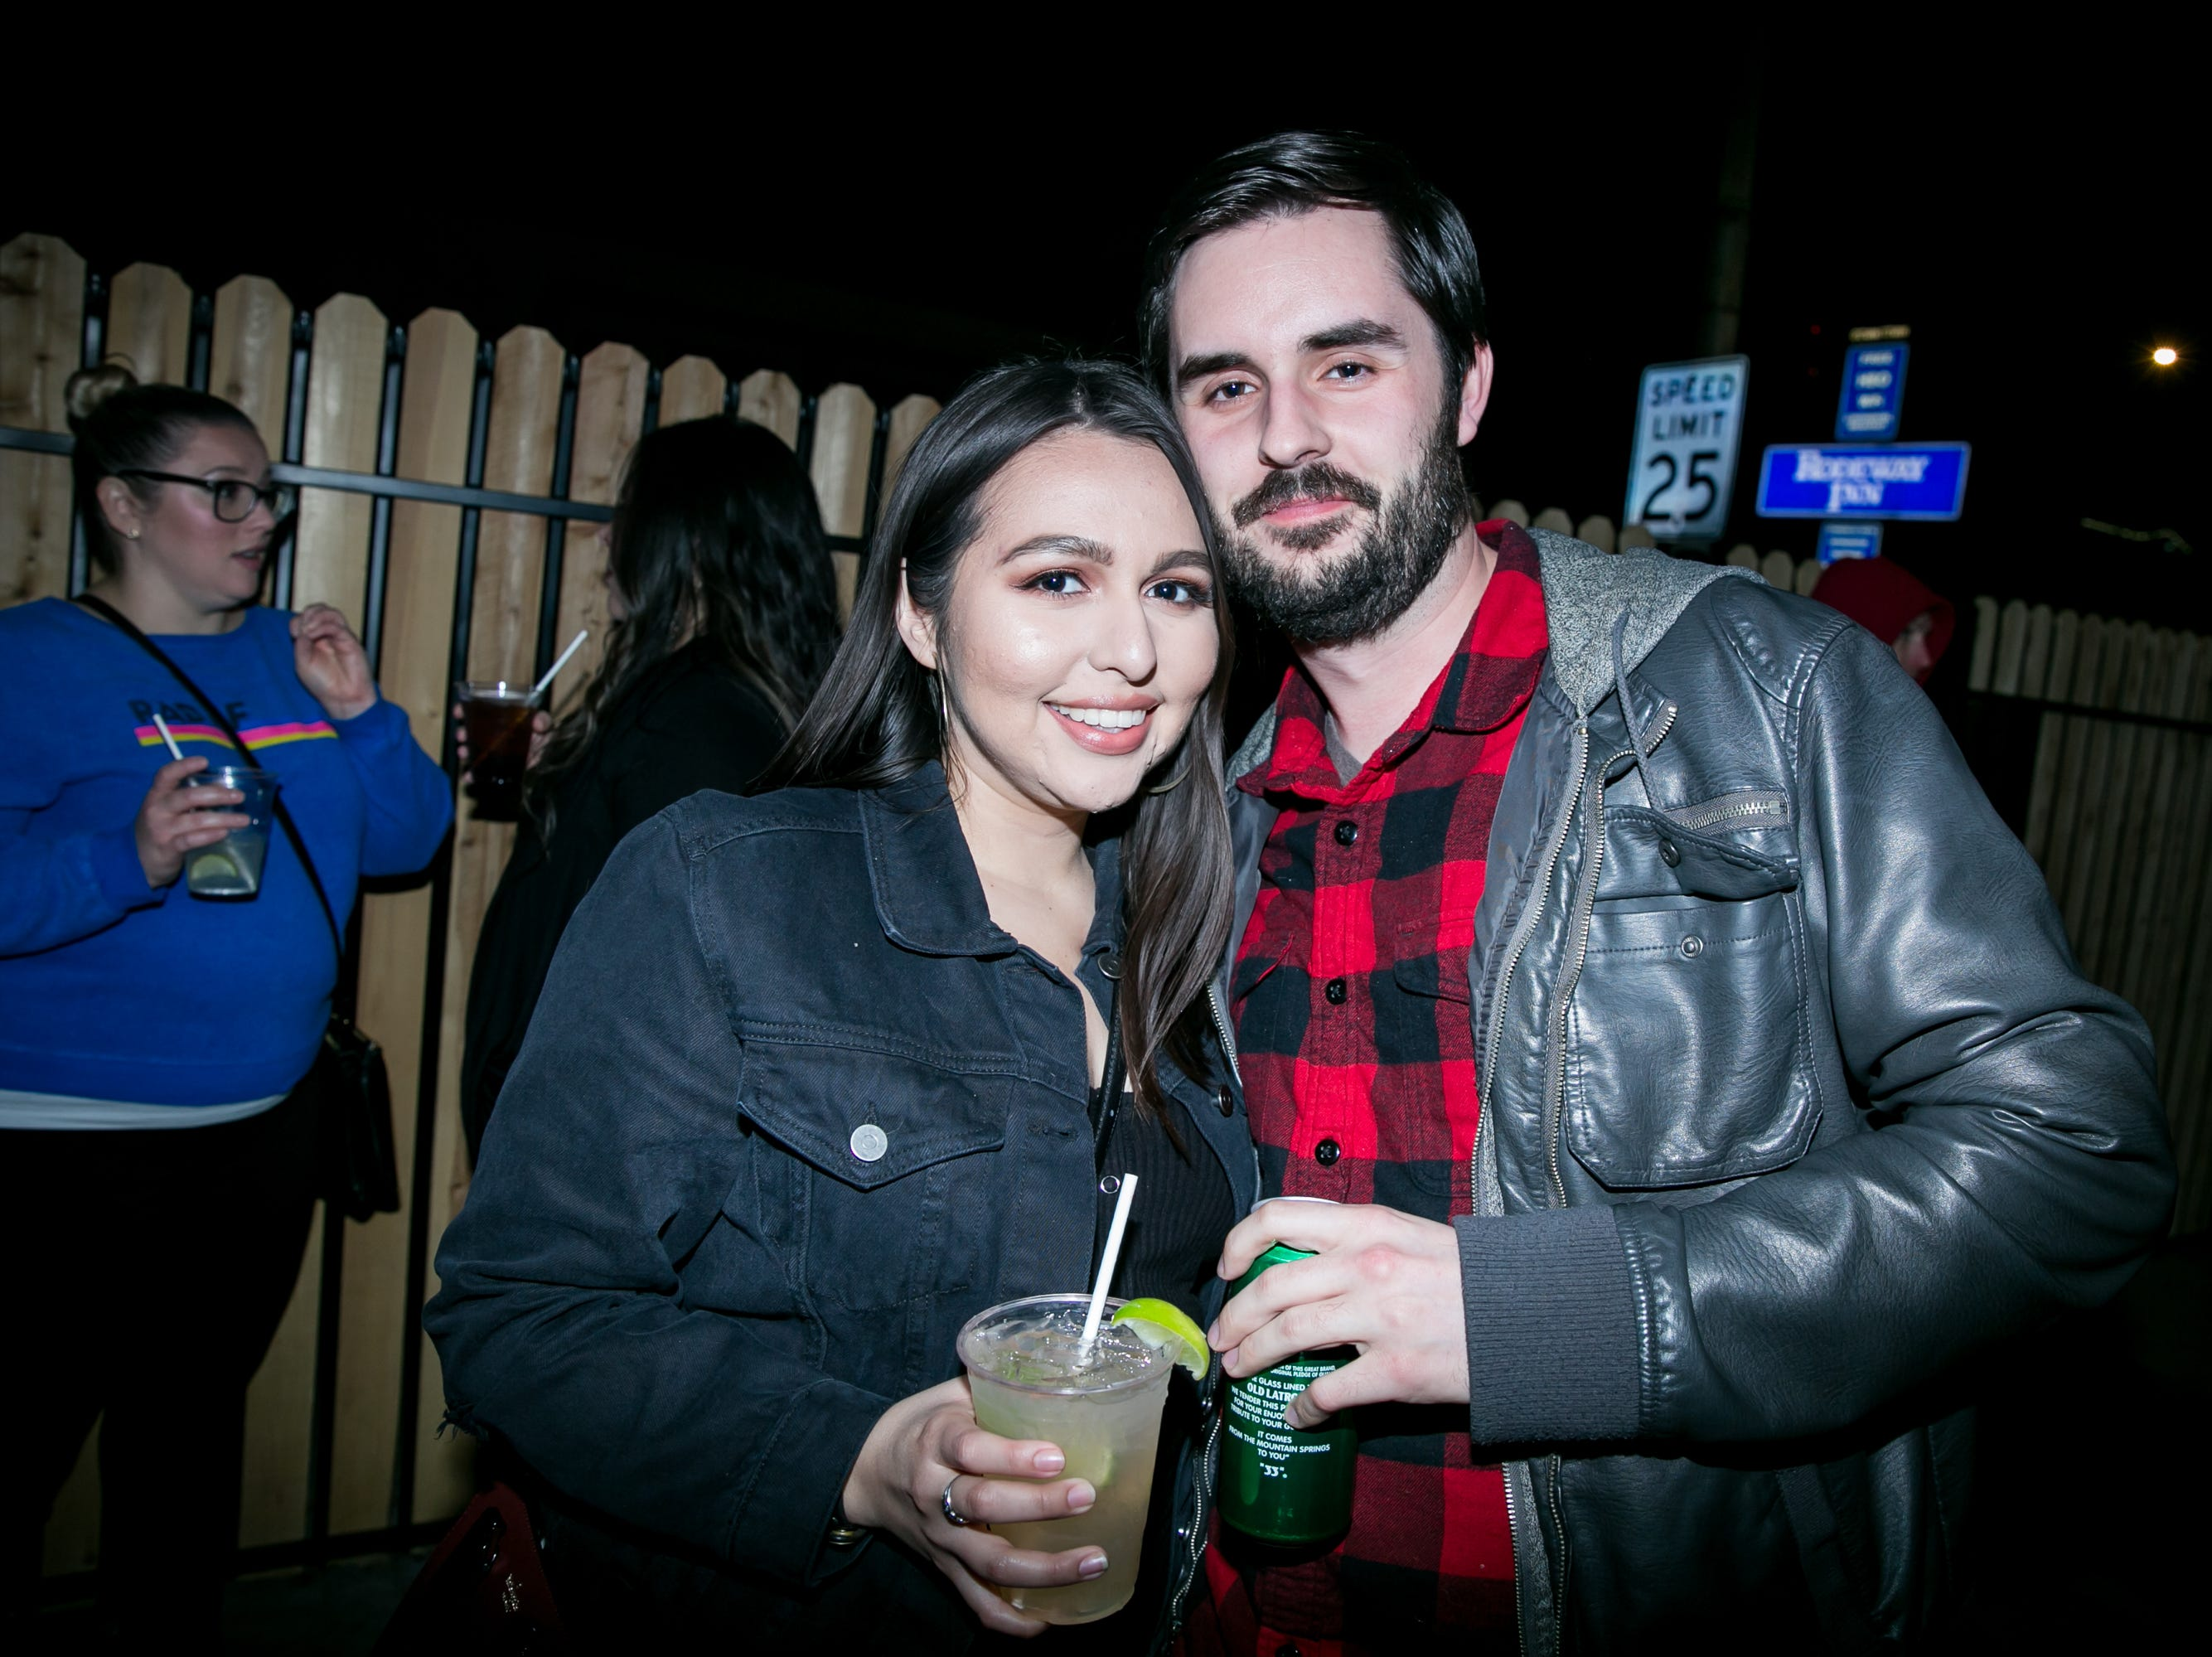 They shared love and emotion endlessly during Drake Night: Fake Real Love at the Van Buren on Feb. 9, 2019.